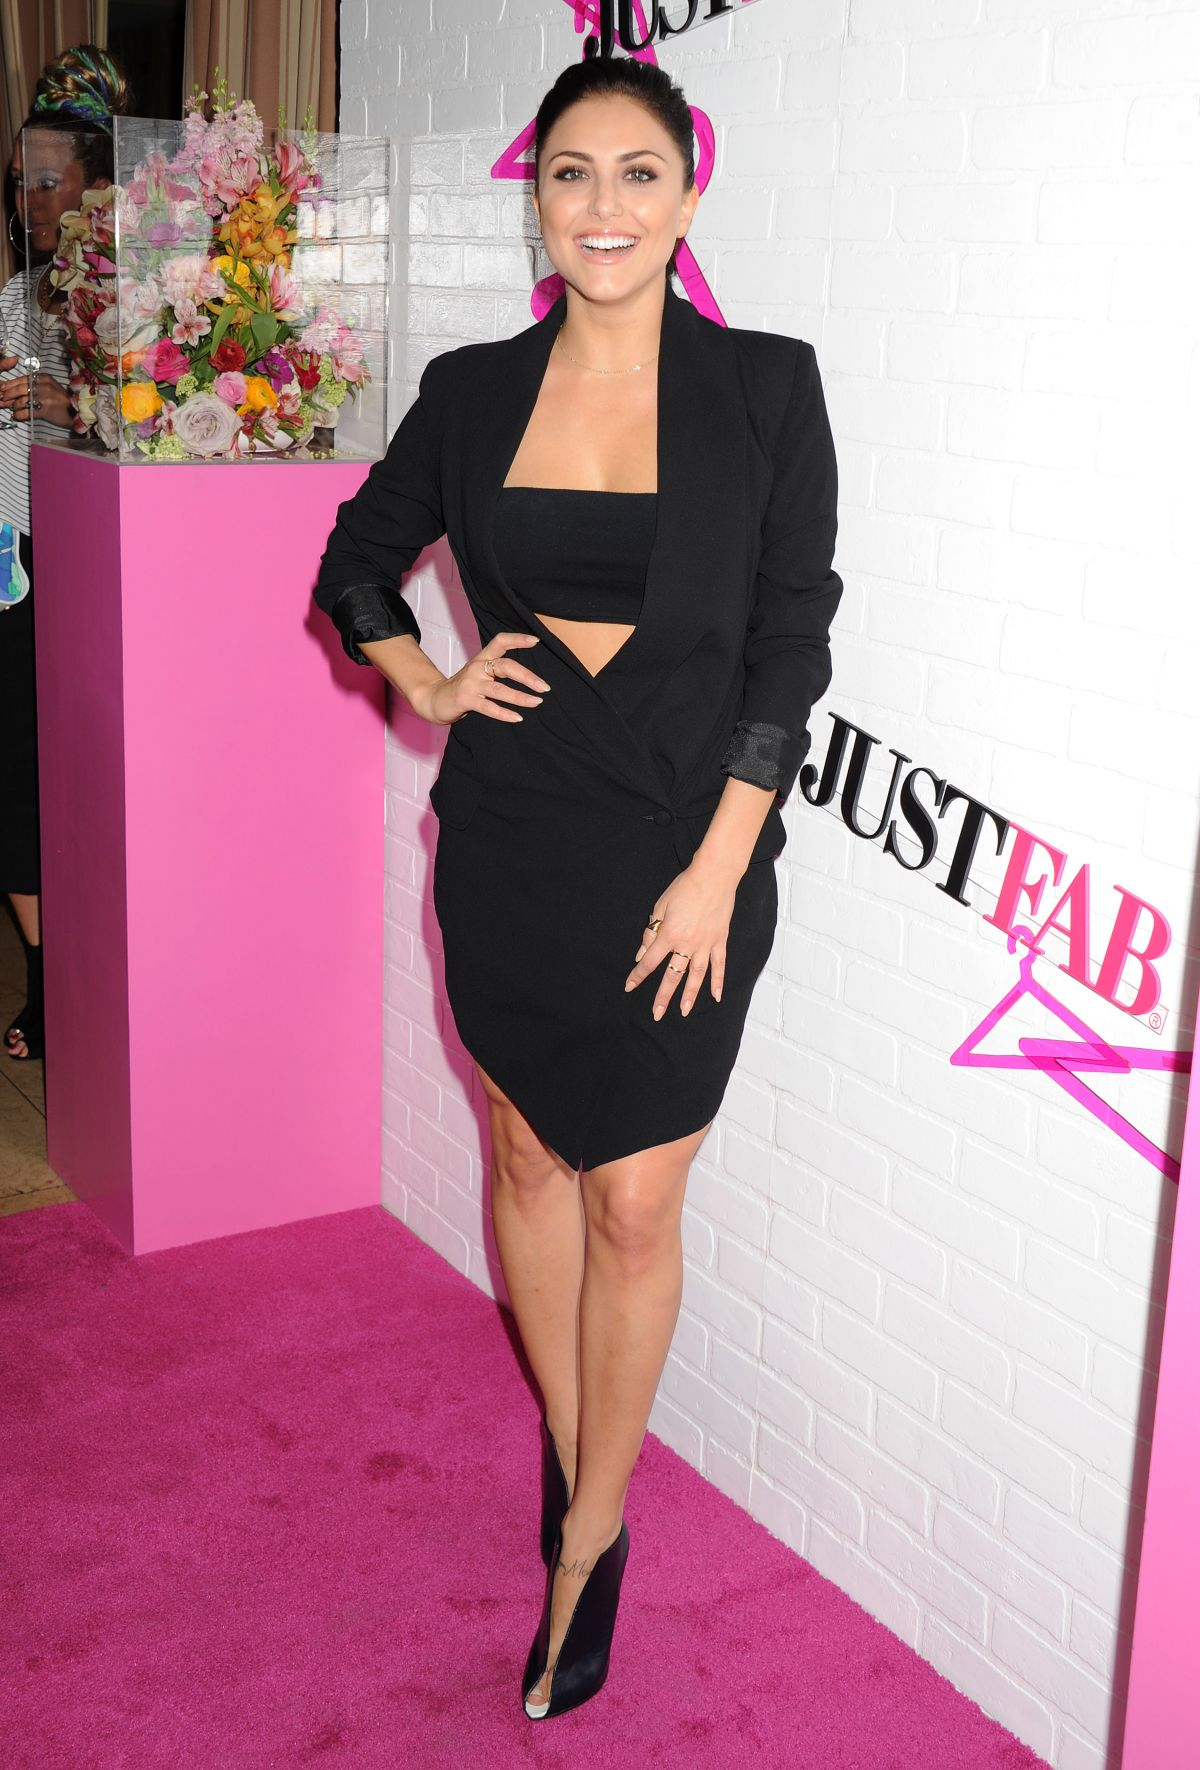 CASSIE SCERBO at Justfab Ready-to-wear Launch Party in ...